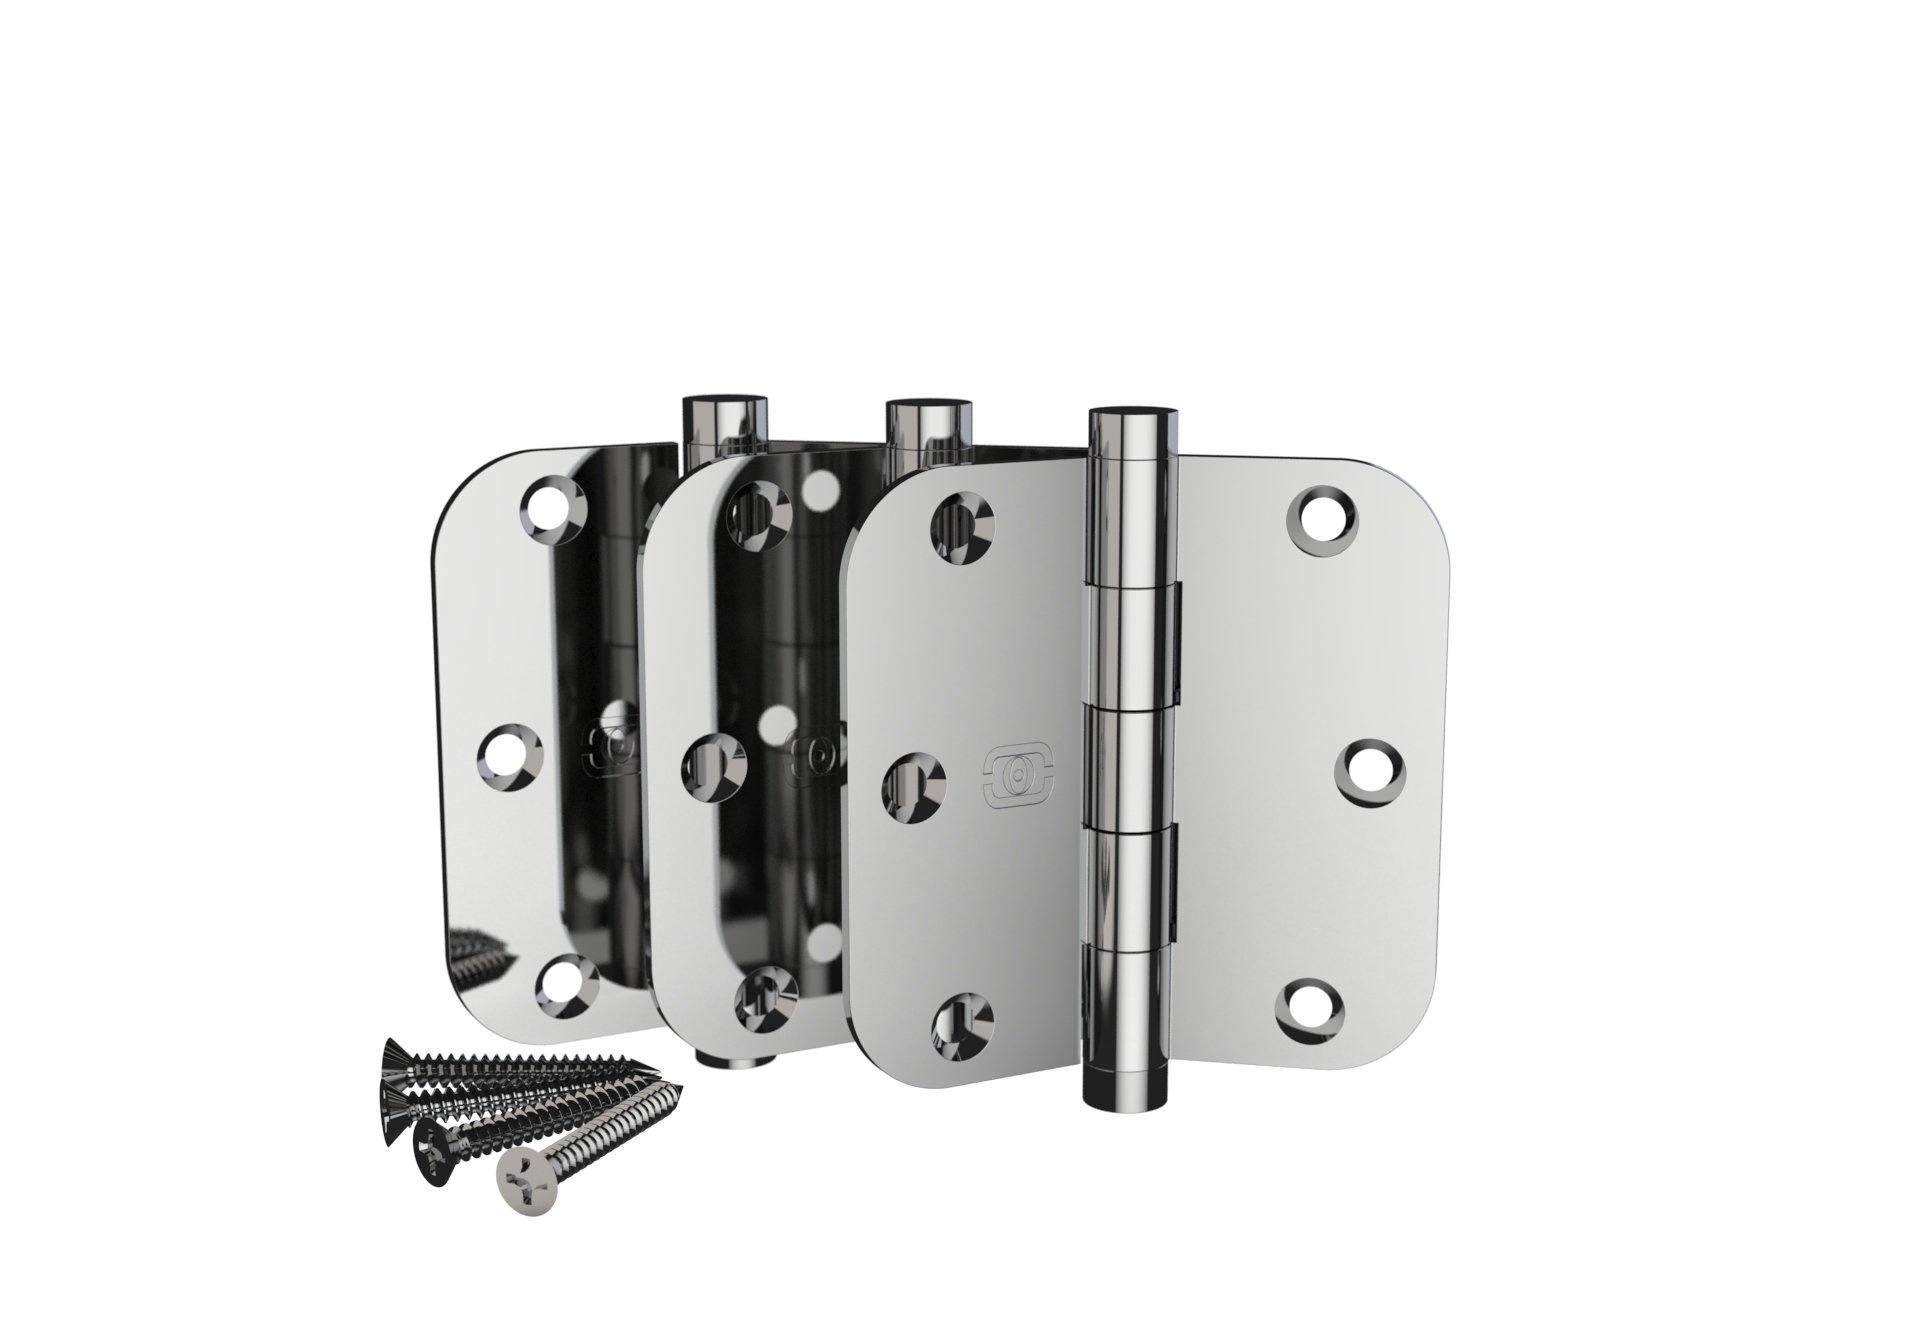 3 Pack Omnia 3 1/2 x 3 1/2 Extruded Solid Brass Door Hinge 5/8'' Radius Corner with Button Tip US26 Finish (Polished Chrome)